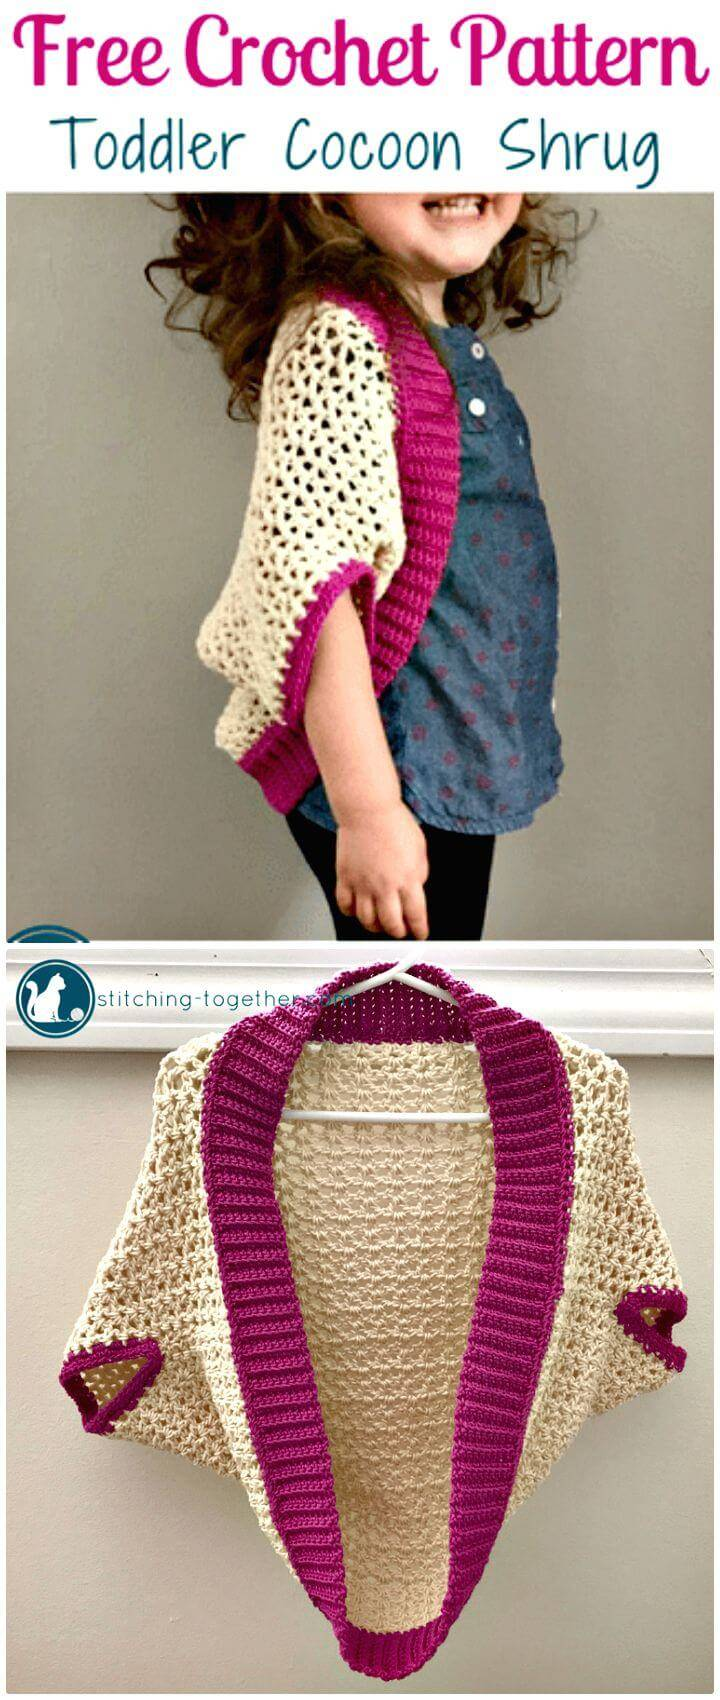 Free Crochet Toddler Cocoon Shrug Pattern